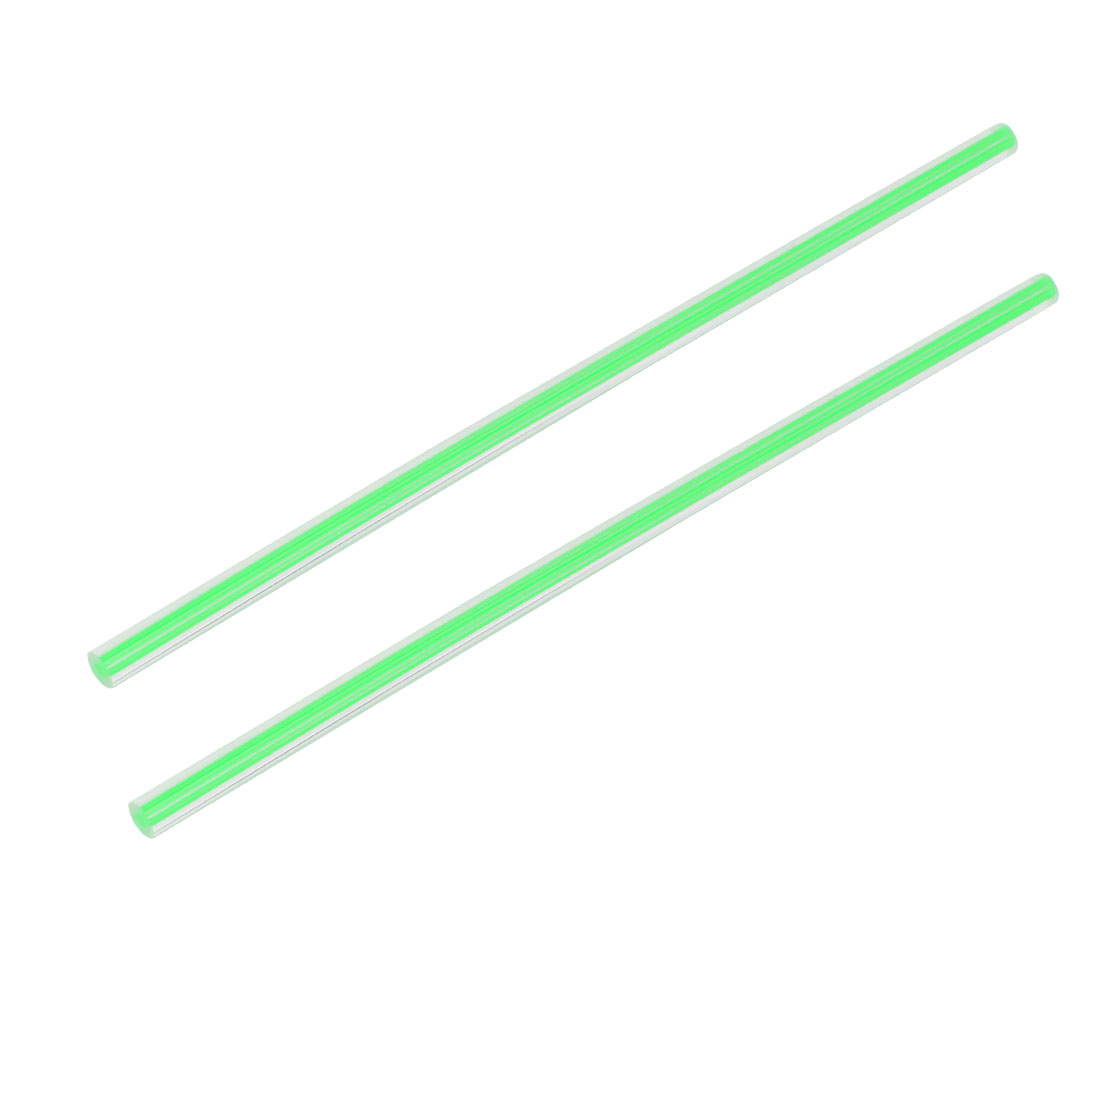 Straight Green Line Solid Acrylic Round Rod PMMA Bar 250mmx8mm 2pcs